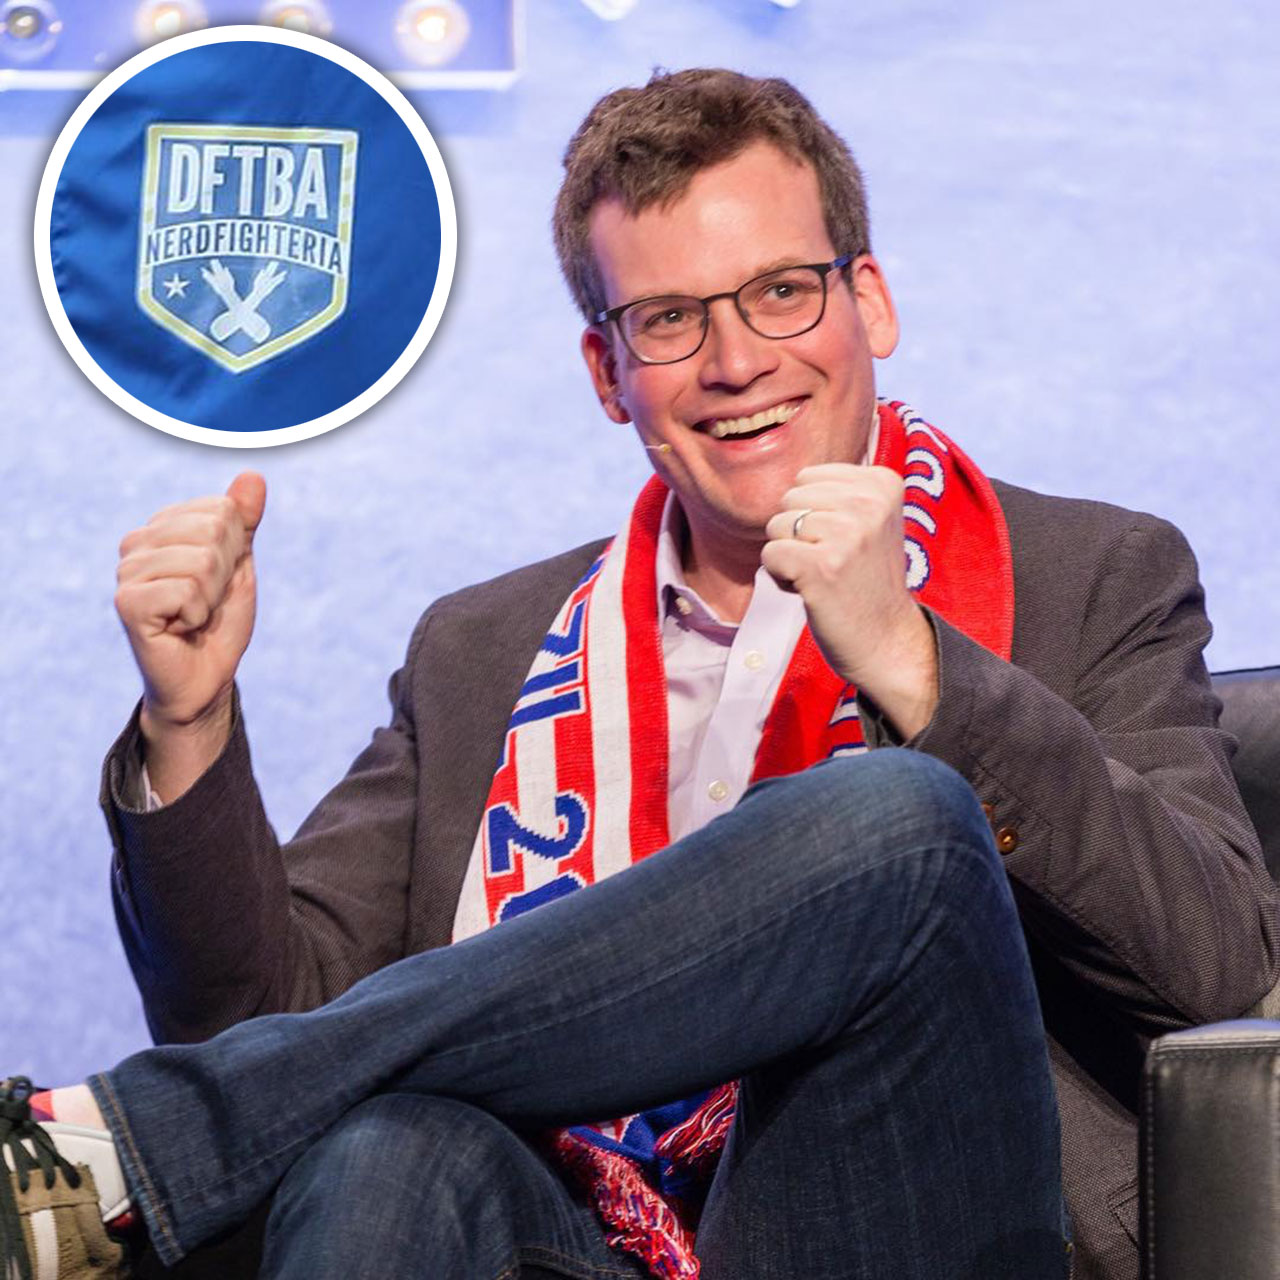 DFTBA: John Green supports AFC Wimbledon by playing EA Sports FIFA